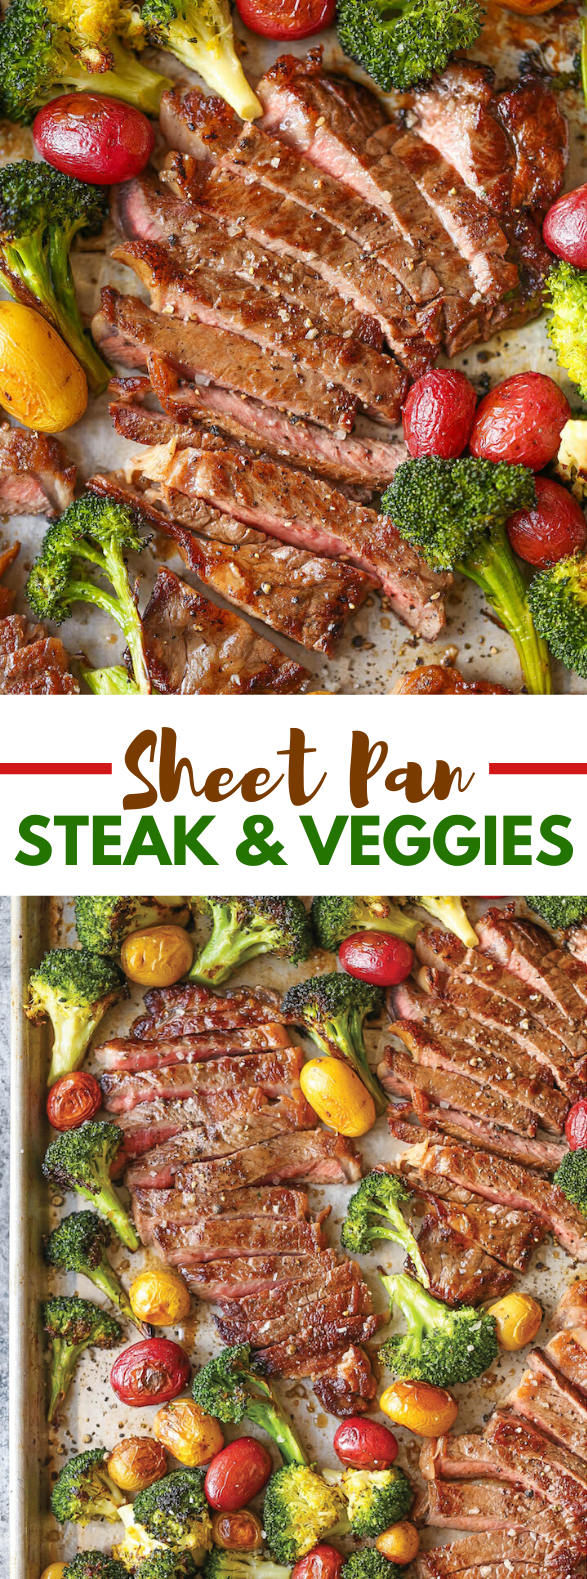 SHEET PAN STEAK AND VEGGIES #dinner #cleaneating